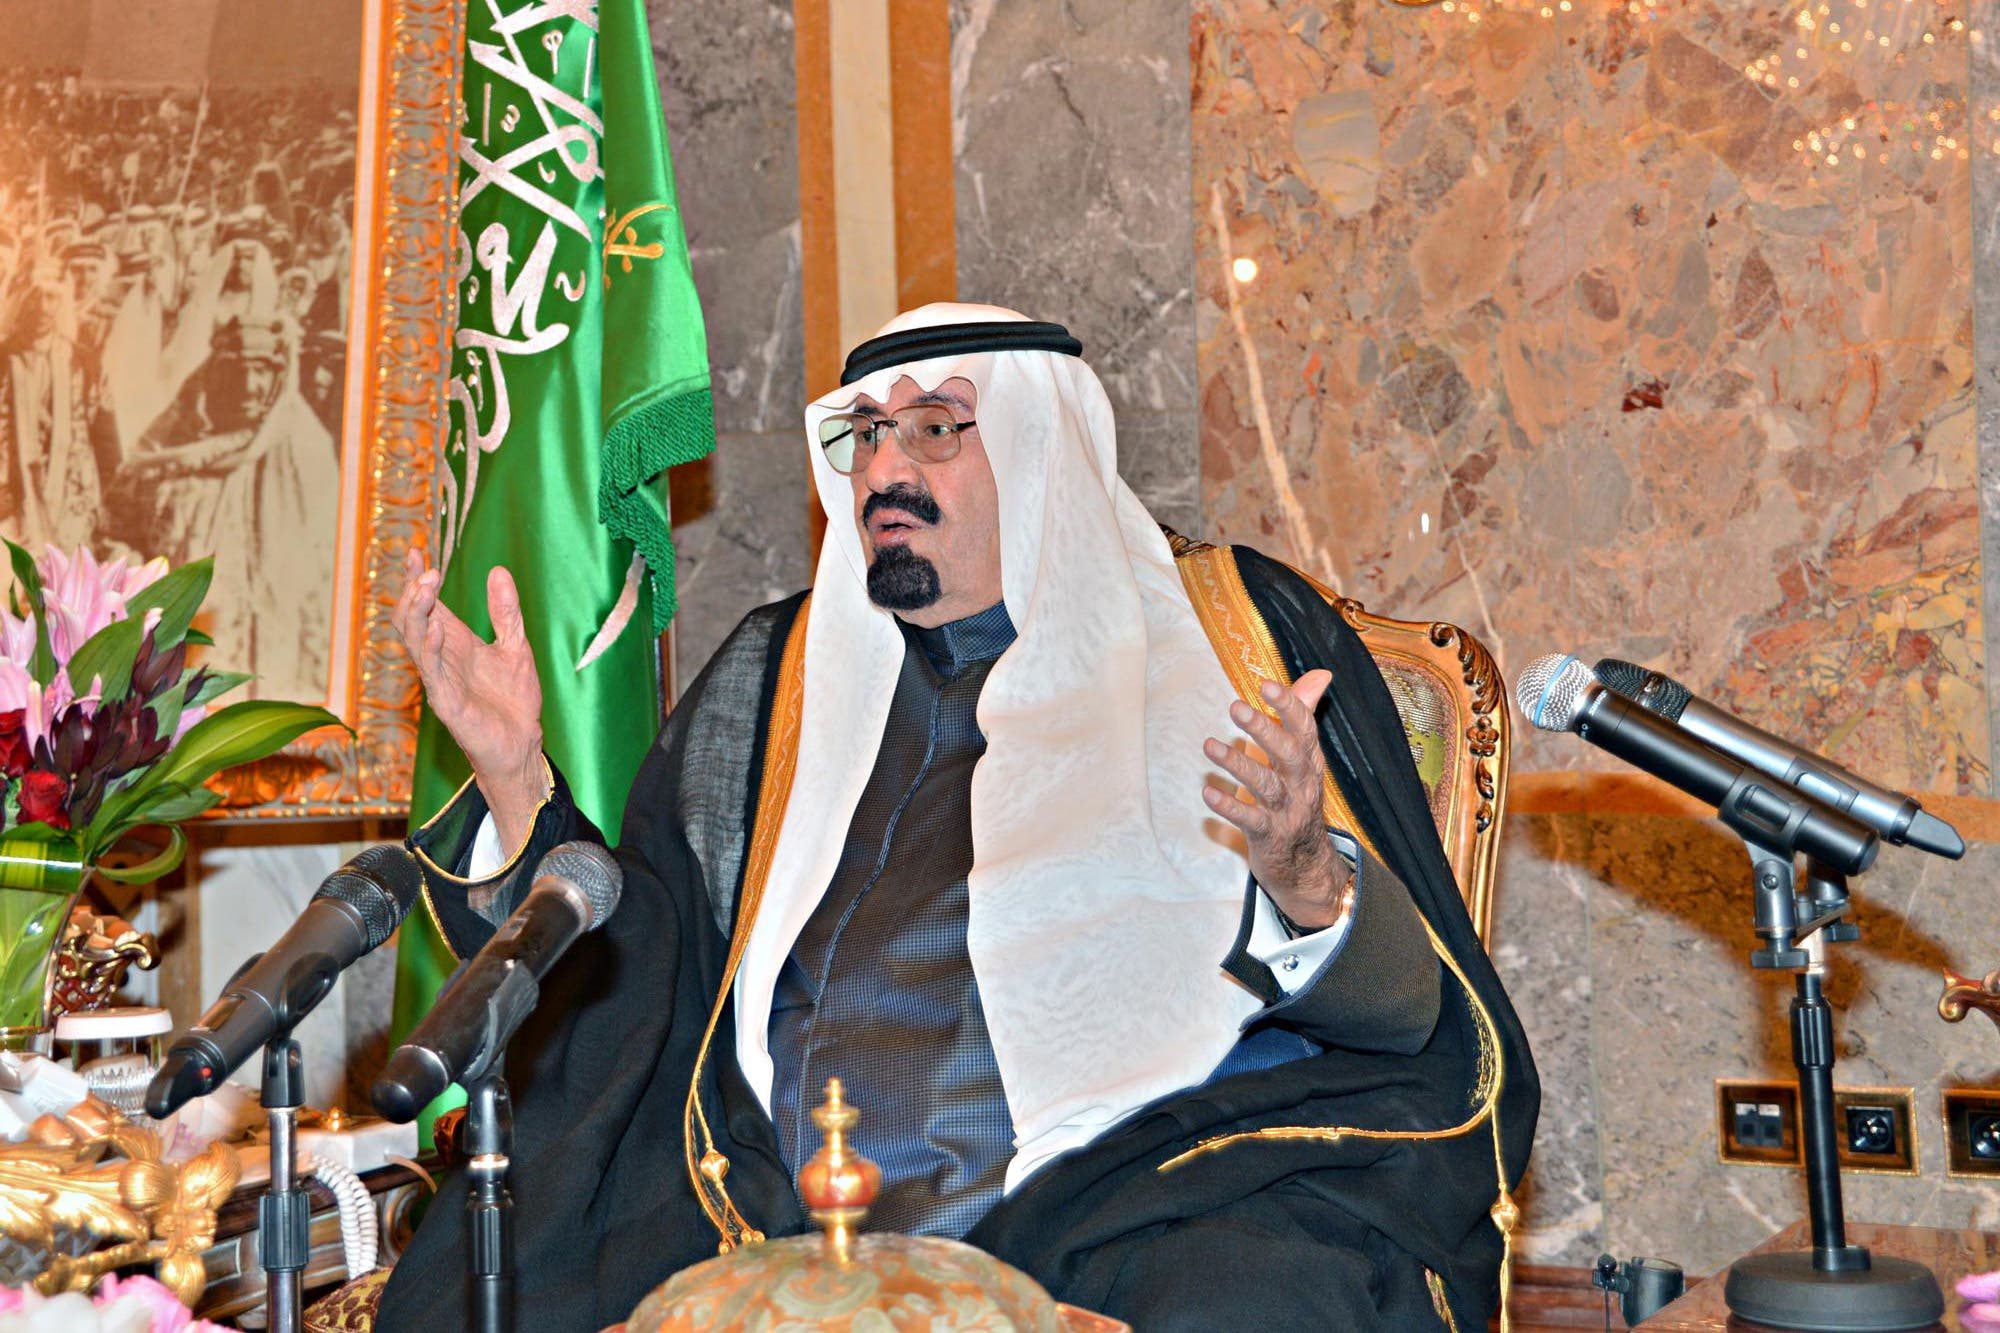 King Abdullah bin Abdul Aziz speaking during the inaguration ceremony of the Shura Council at his palace in Riyadh (Photo courtesy of AFP/HO/SPA)